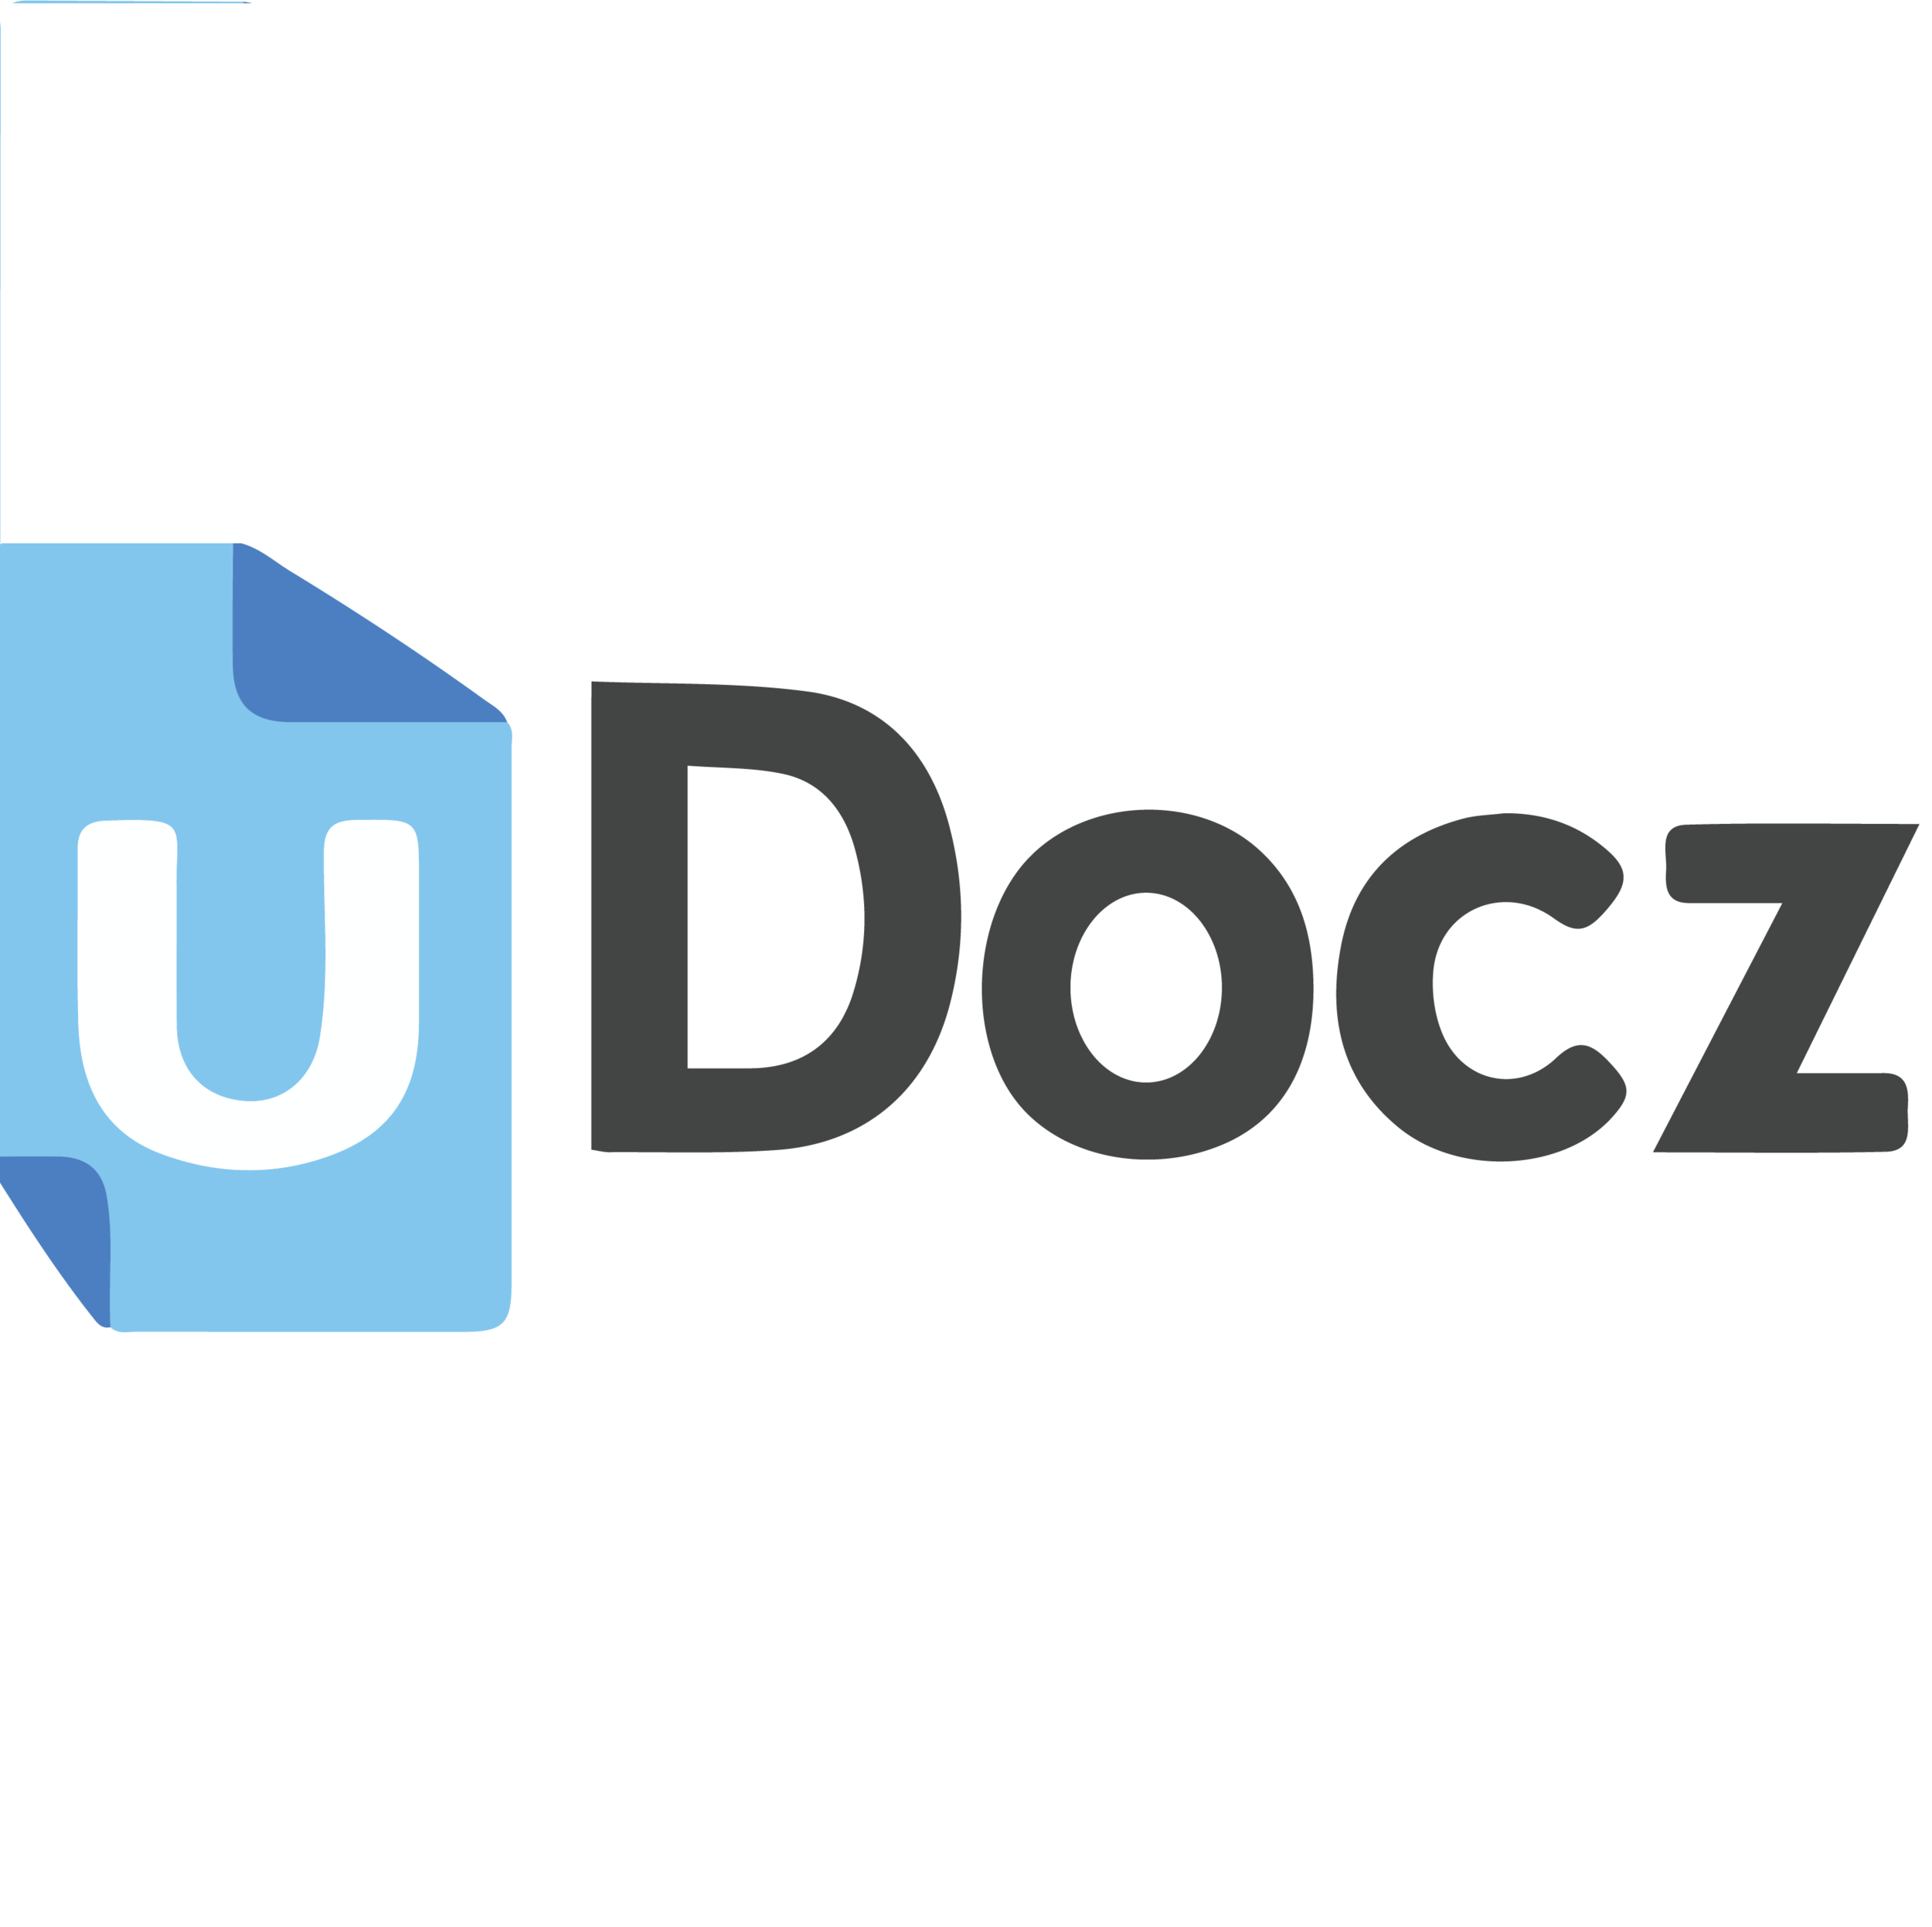 logo alta udocz-01.png